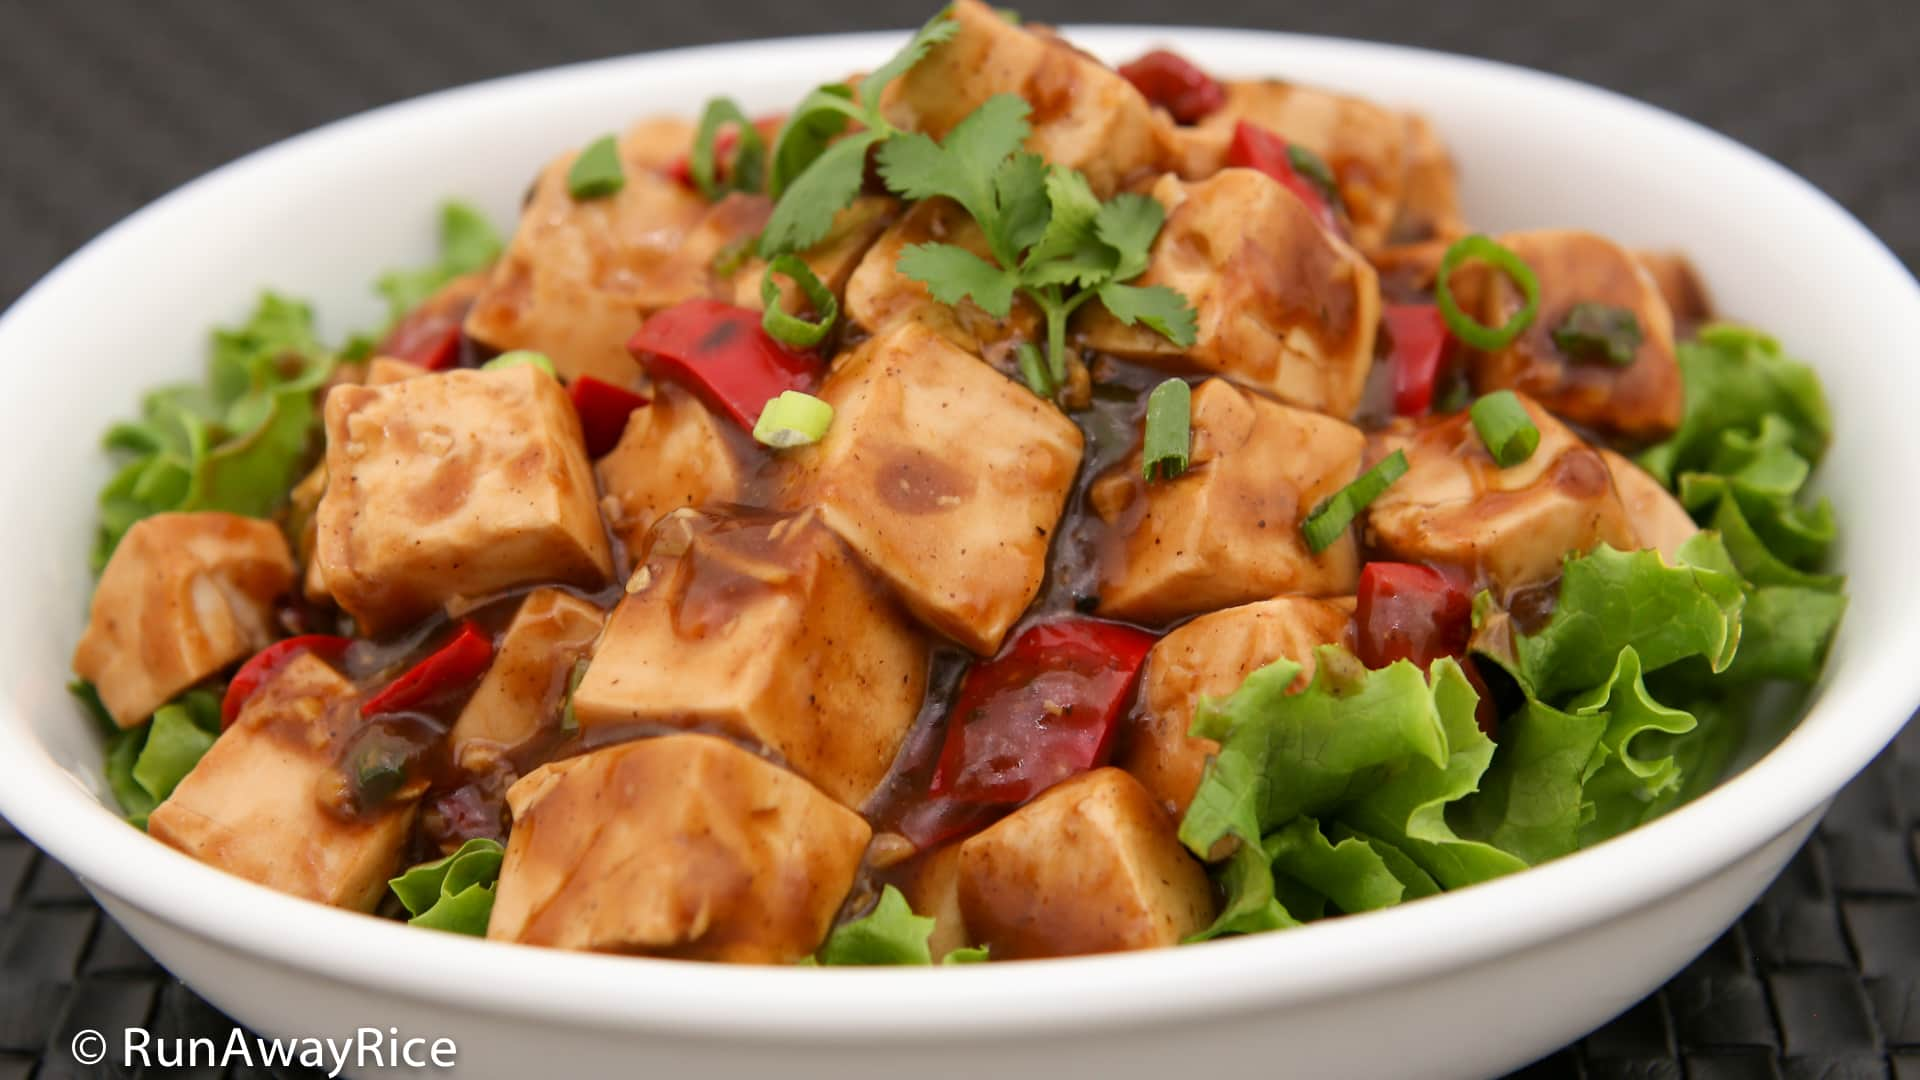 Tofu in Black Bean Sauce (Dau Hu Sot Tuong Den) - savory, saucey and so delish! | recipe from runawayrice.com